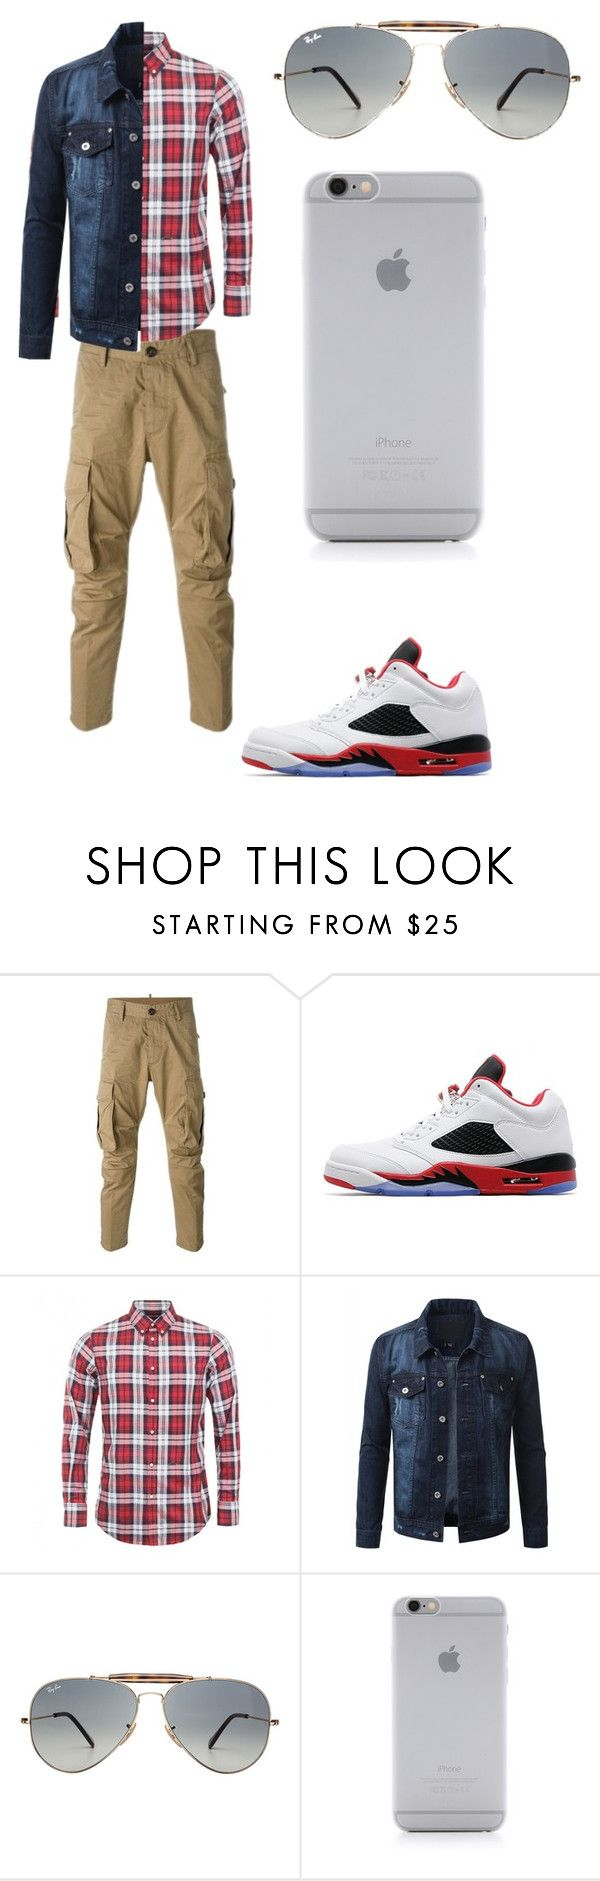 """School outfit #highschool #boys"" by mosthated89 ❤ liked on Polyvore featuring Dsquared2, Jordan Brand, Ray-Ban, Native Union, men's fashion and menswear"